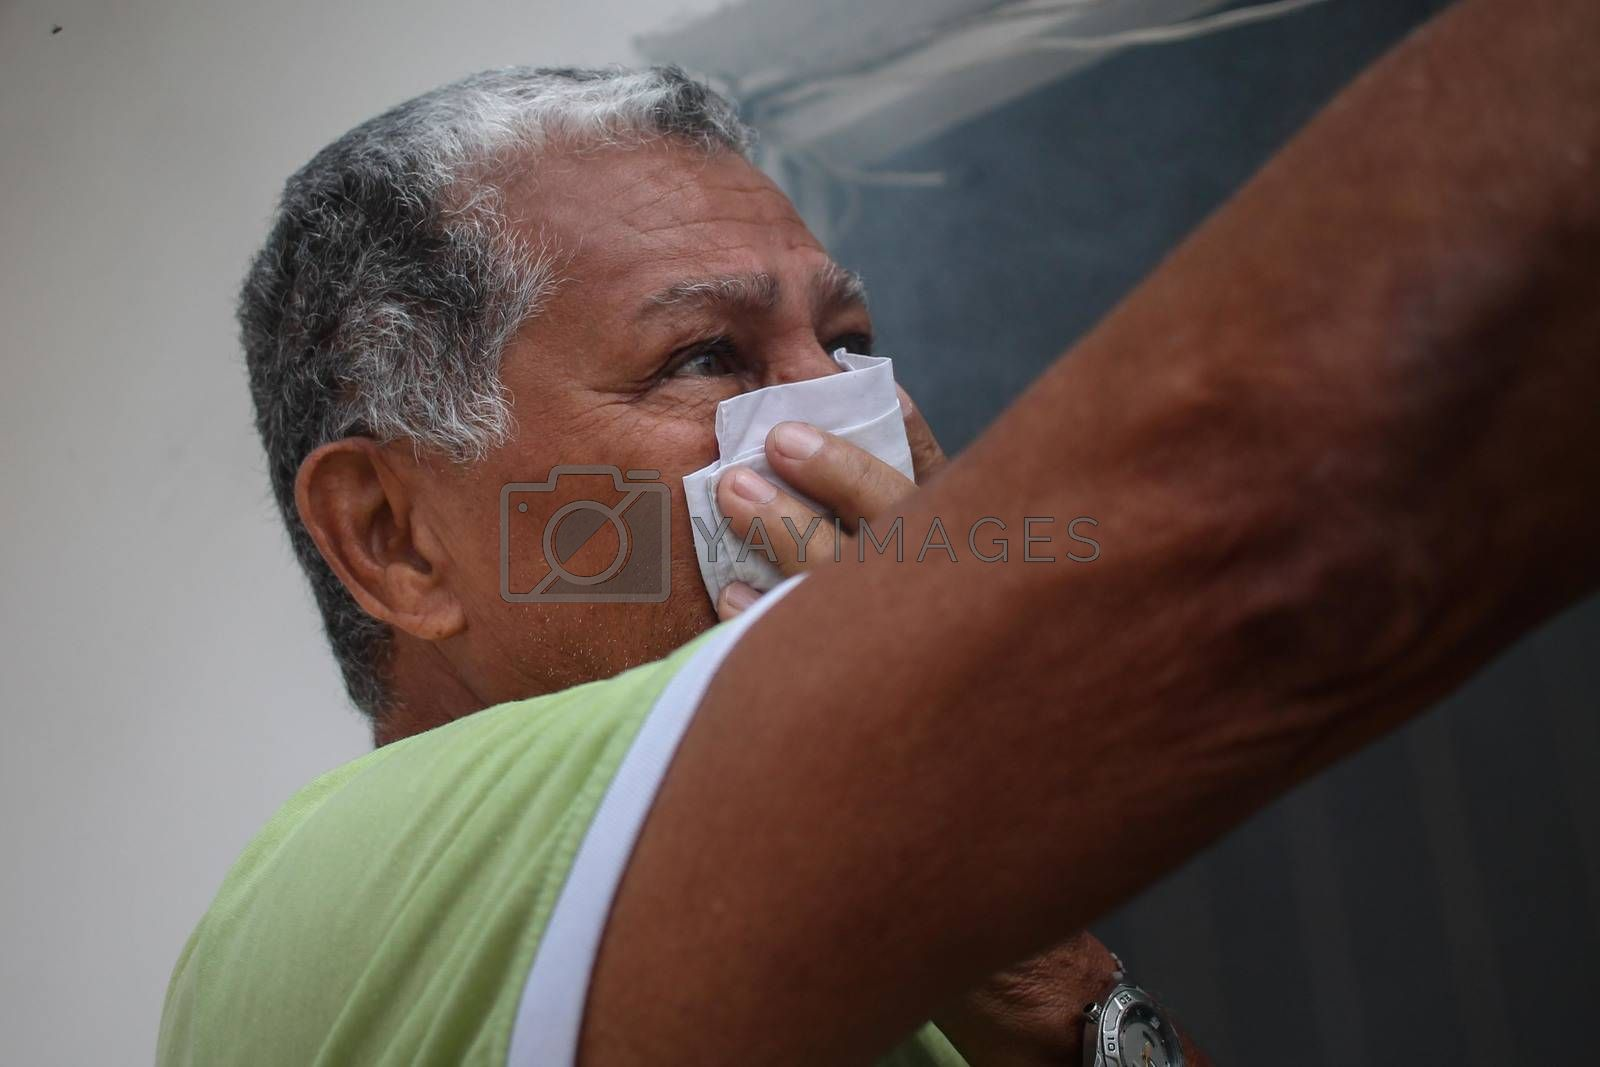 VENEZUELA, Caracas: A resident of Caracus, Venezuela protects himself from smoke as fumigation crews work to exterminate mosquitoes carrying the Zika virus in the slums of Caracas, Venezuela on February 3, 2016. As of February 4, there have been reports of at least 255 cases of the rare Guillain-Barre syndrome — which causes the immune system to attack the nerves — potentially linked to the Zika virus in Venezuela.